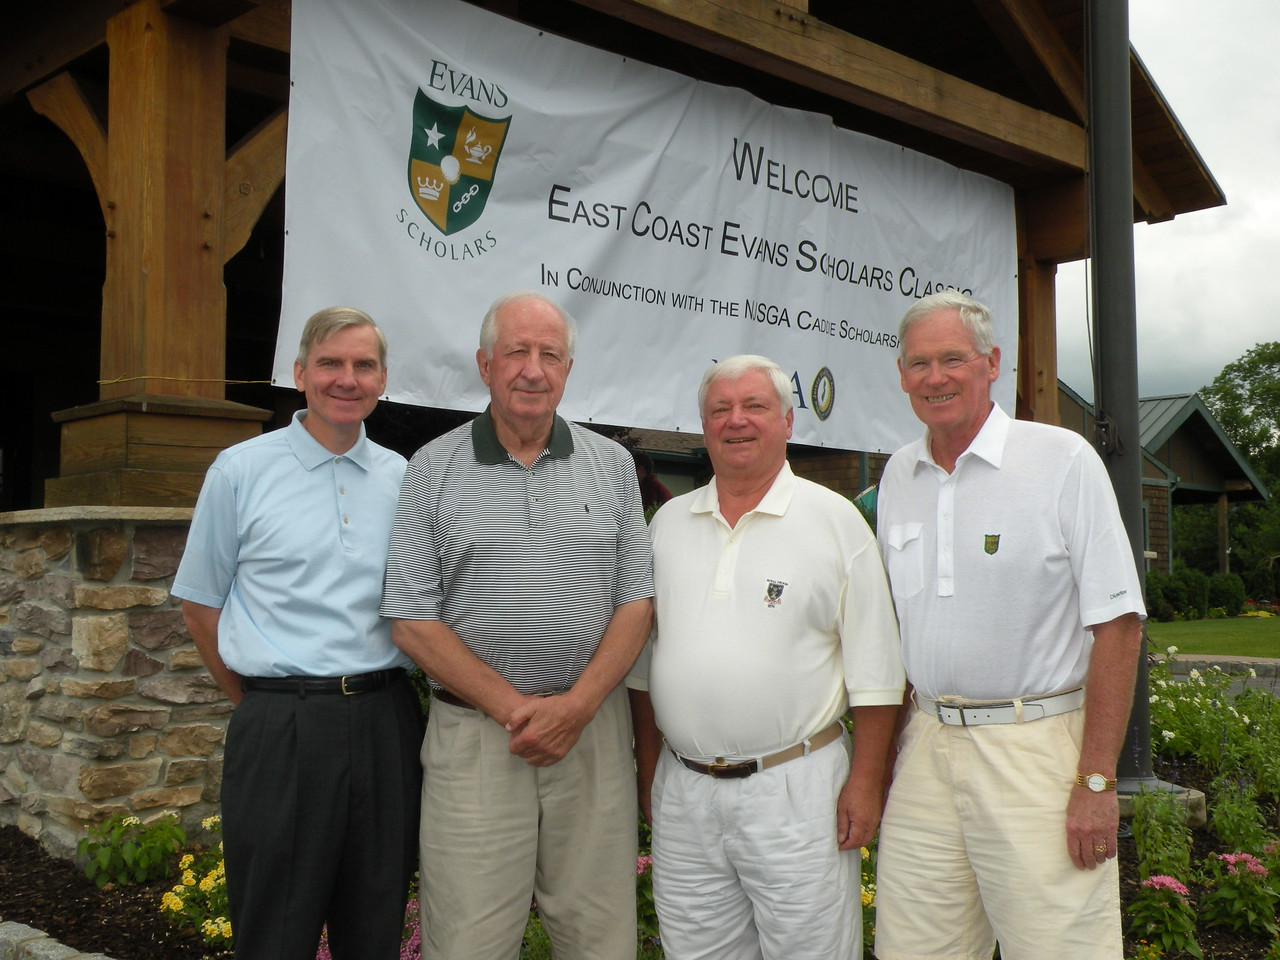 June 25, 2012<br /> East Coast Evans Scholars Classic<br /> Hawk Pointe Golf Club, Washington, N.J.